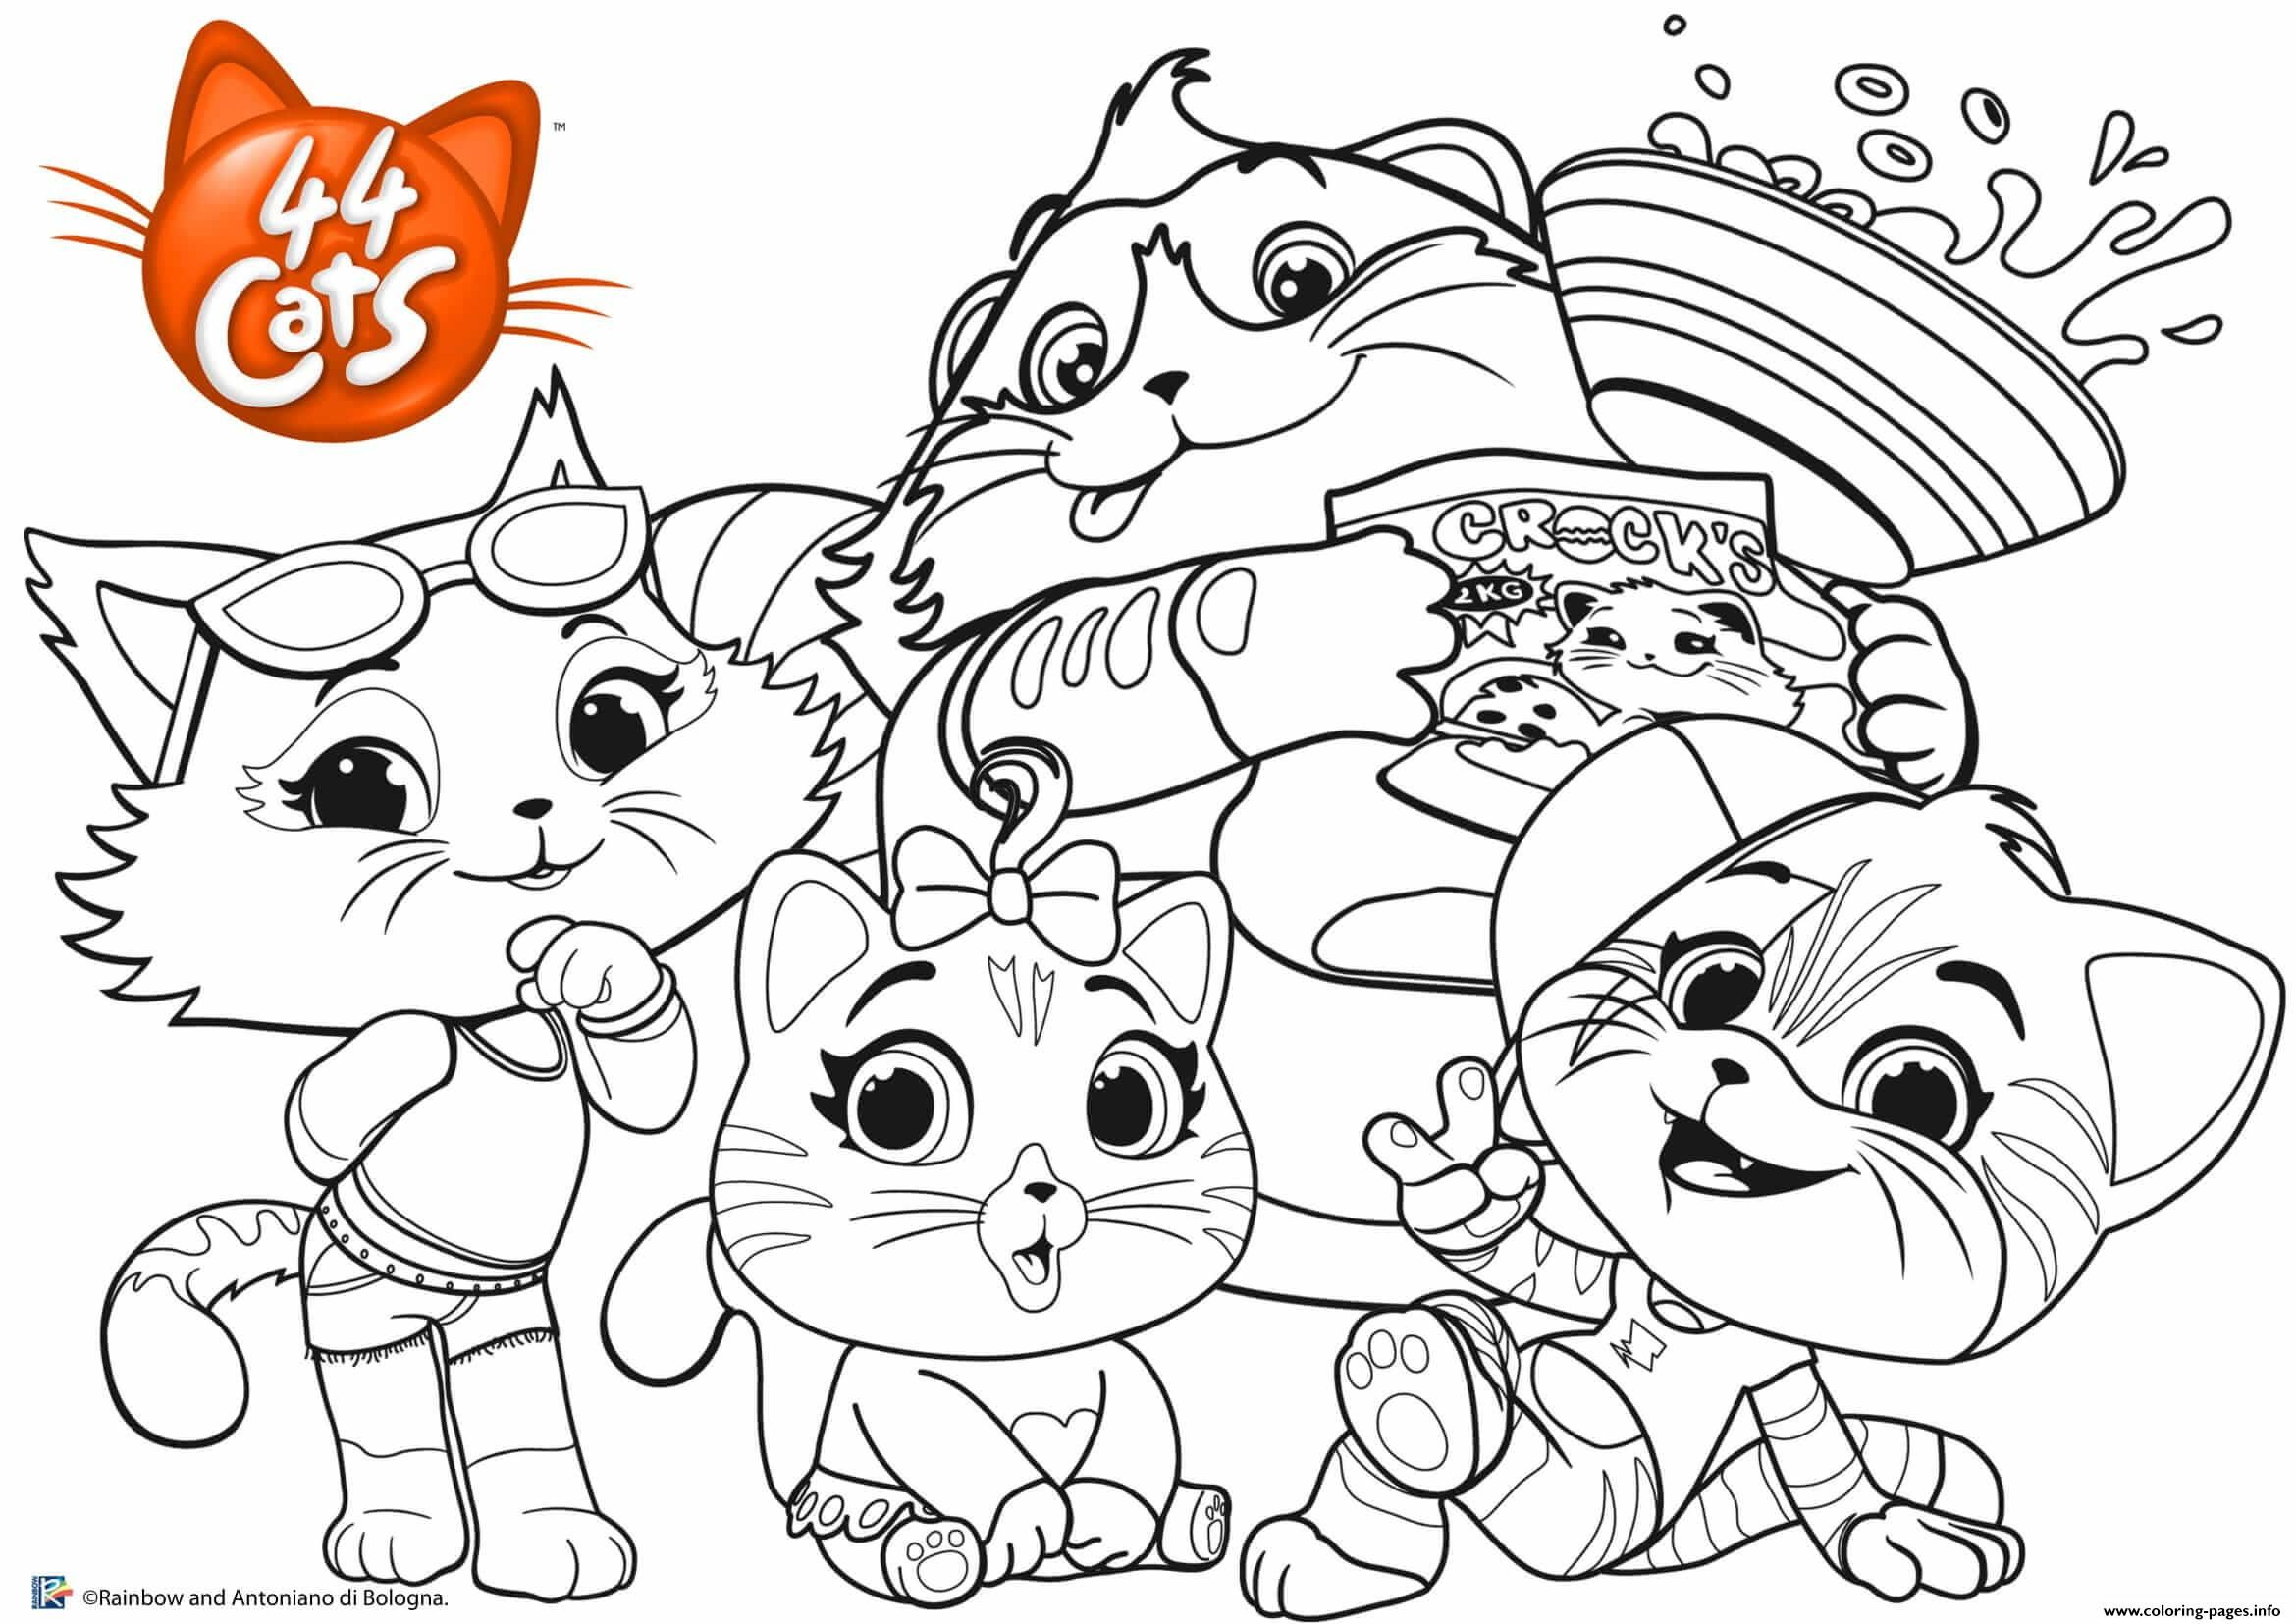 Print Buffycats 44 Cats Coloring Pages Cat Coloring Page Unicorn Coloring Pages Ladybug Coloring Page